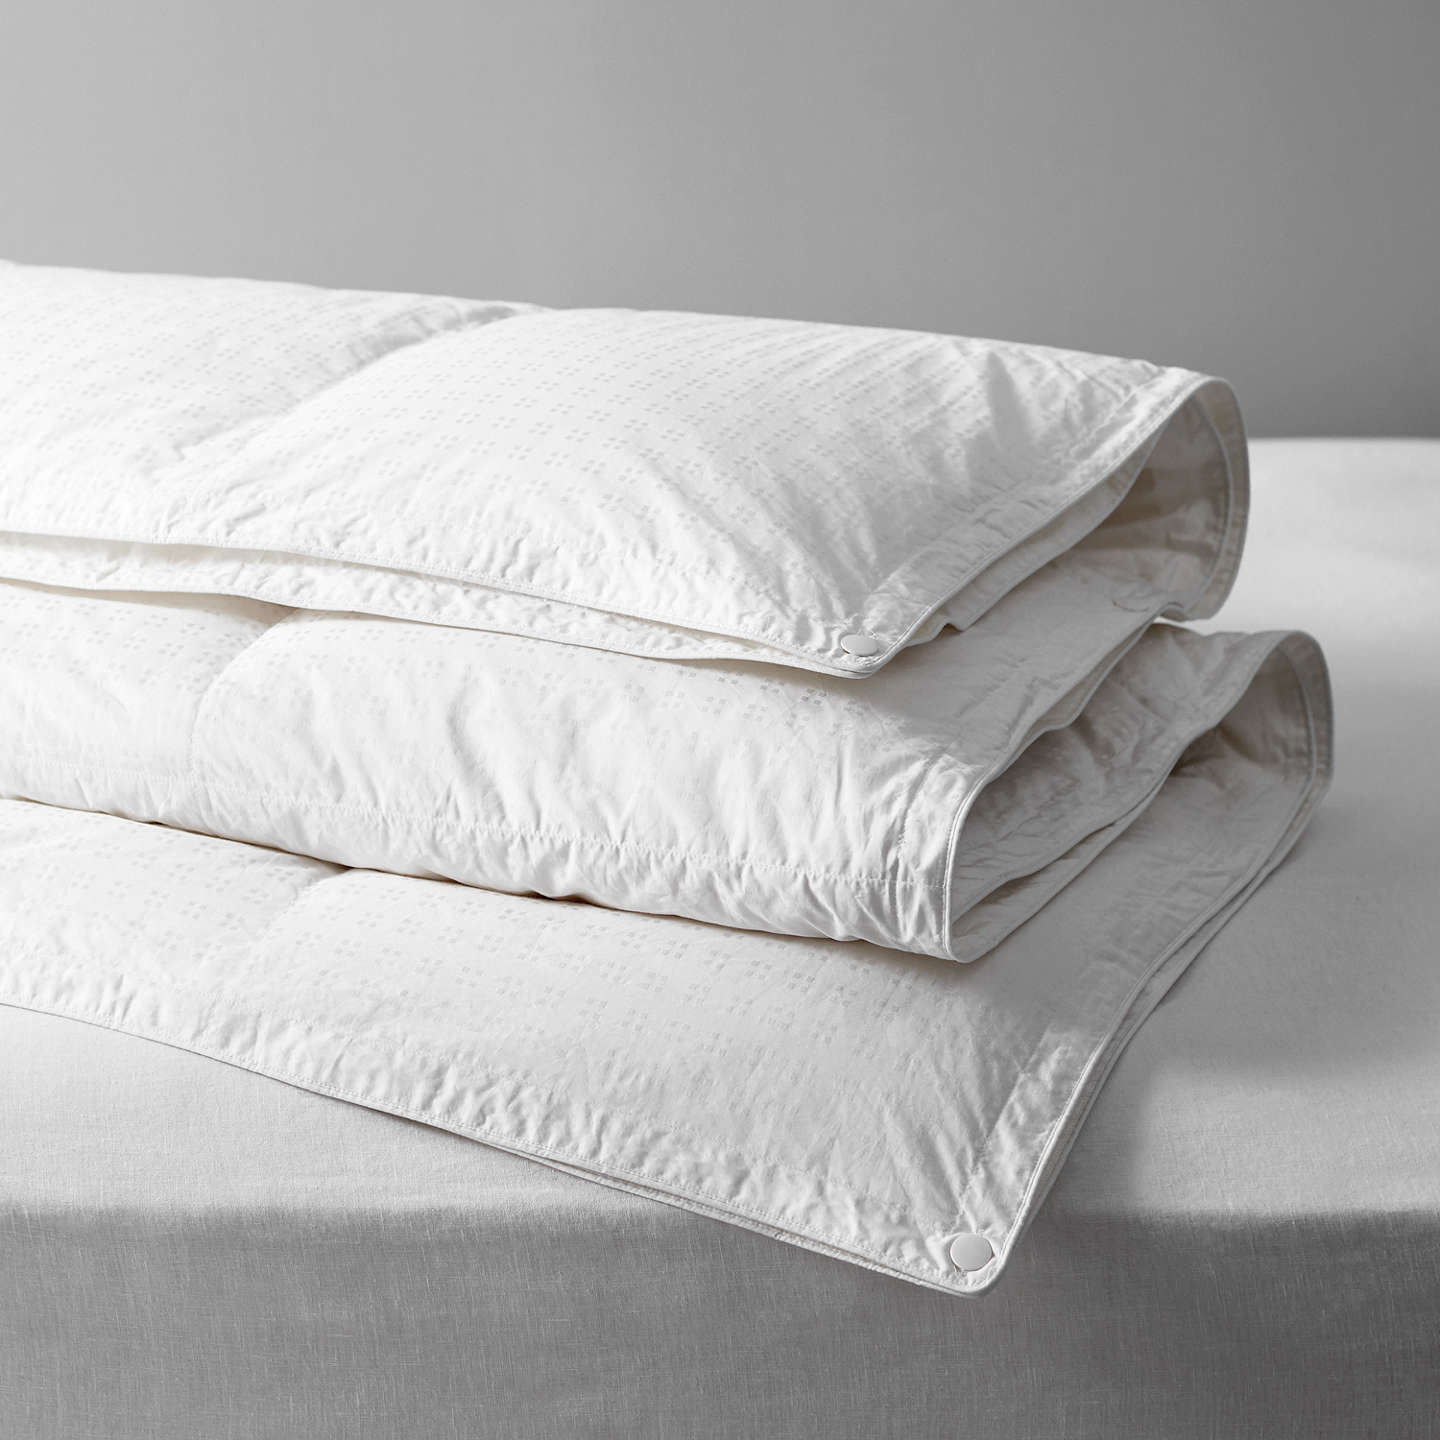 BuyJohn Lewis Natural Collection Siberian Goose Down Duvet, 10.5 Tog (3.5 + 7 Tog) All Seasons, Single Online at johnlewis.com